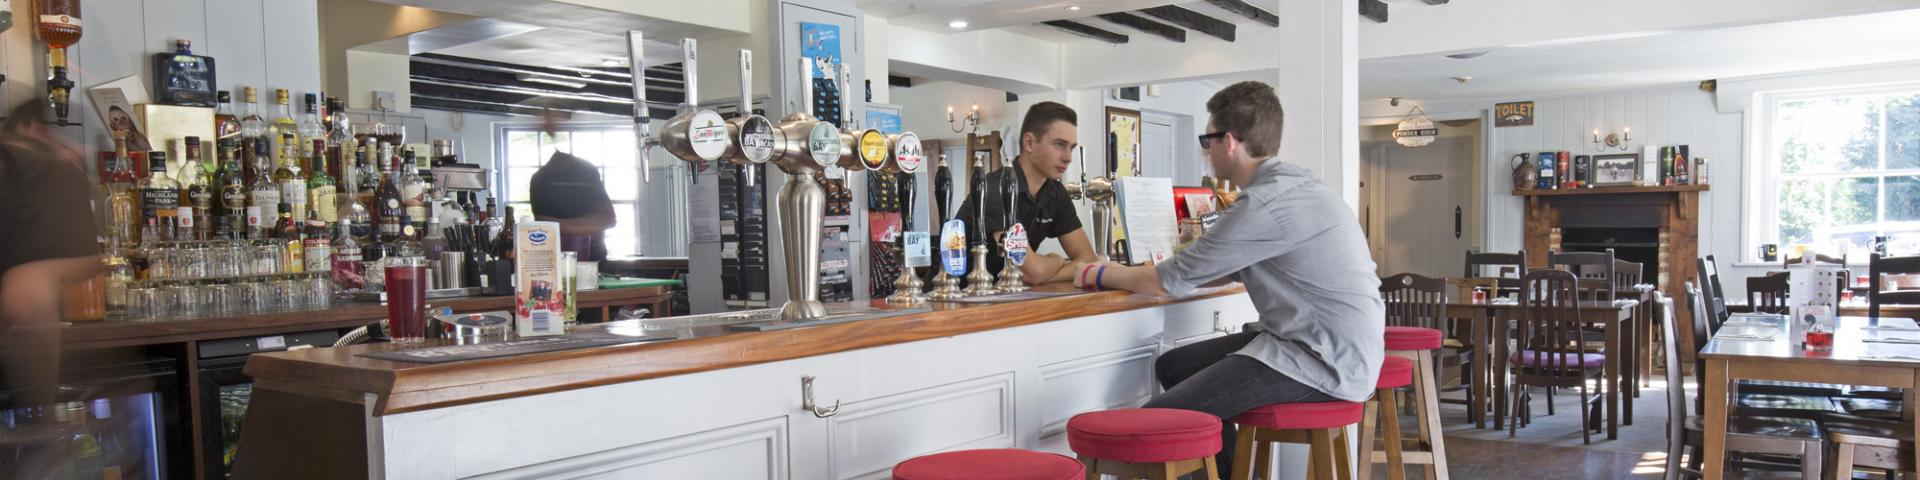 The Red Lion is an attractive pub built in the 1800s. Famous regulars from the past include Prime Minister Harold Macmillan and President J F Kennedy. Situated in the beautiful Ashdown Forest and close to Haywards Heath, the Red Lion is popular with dog w